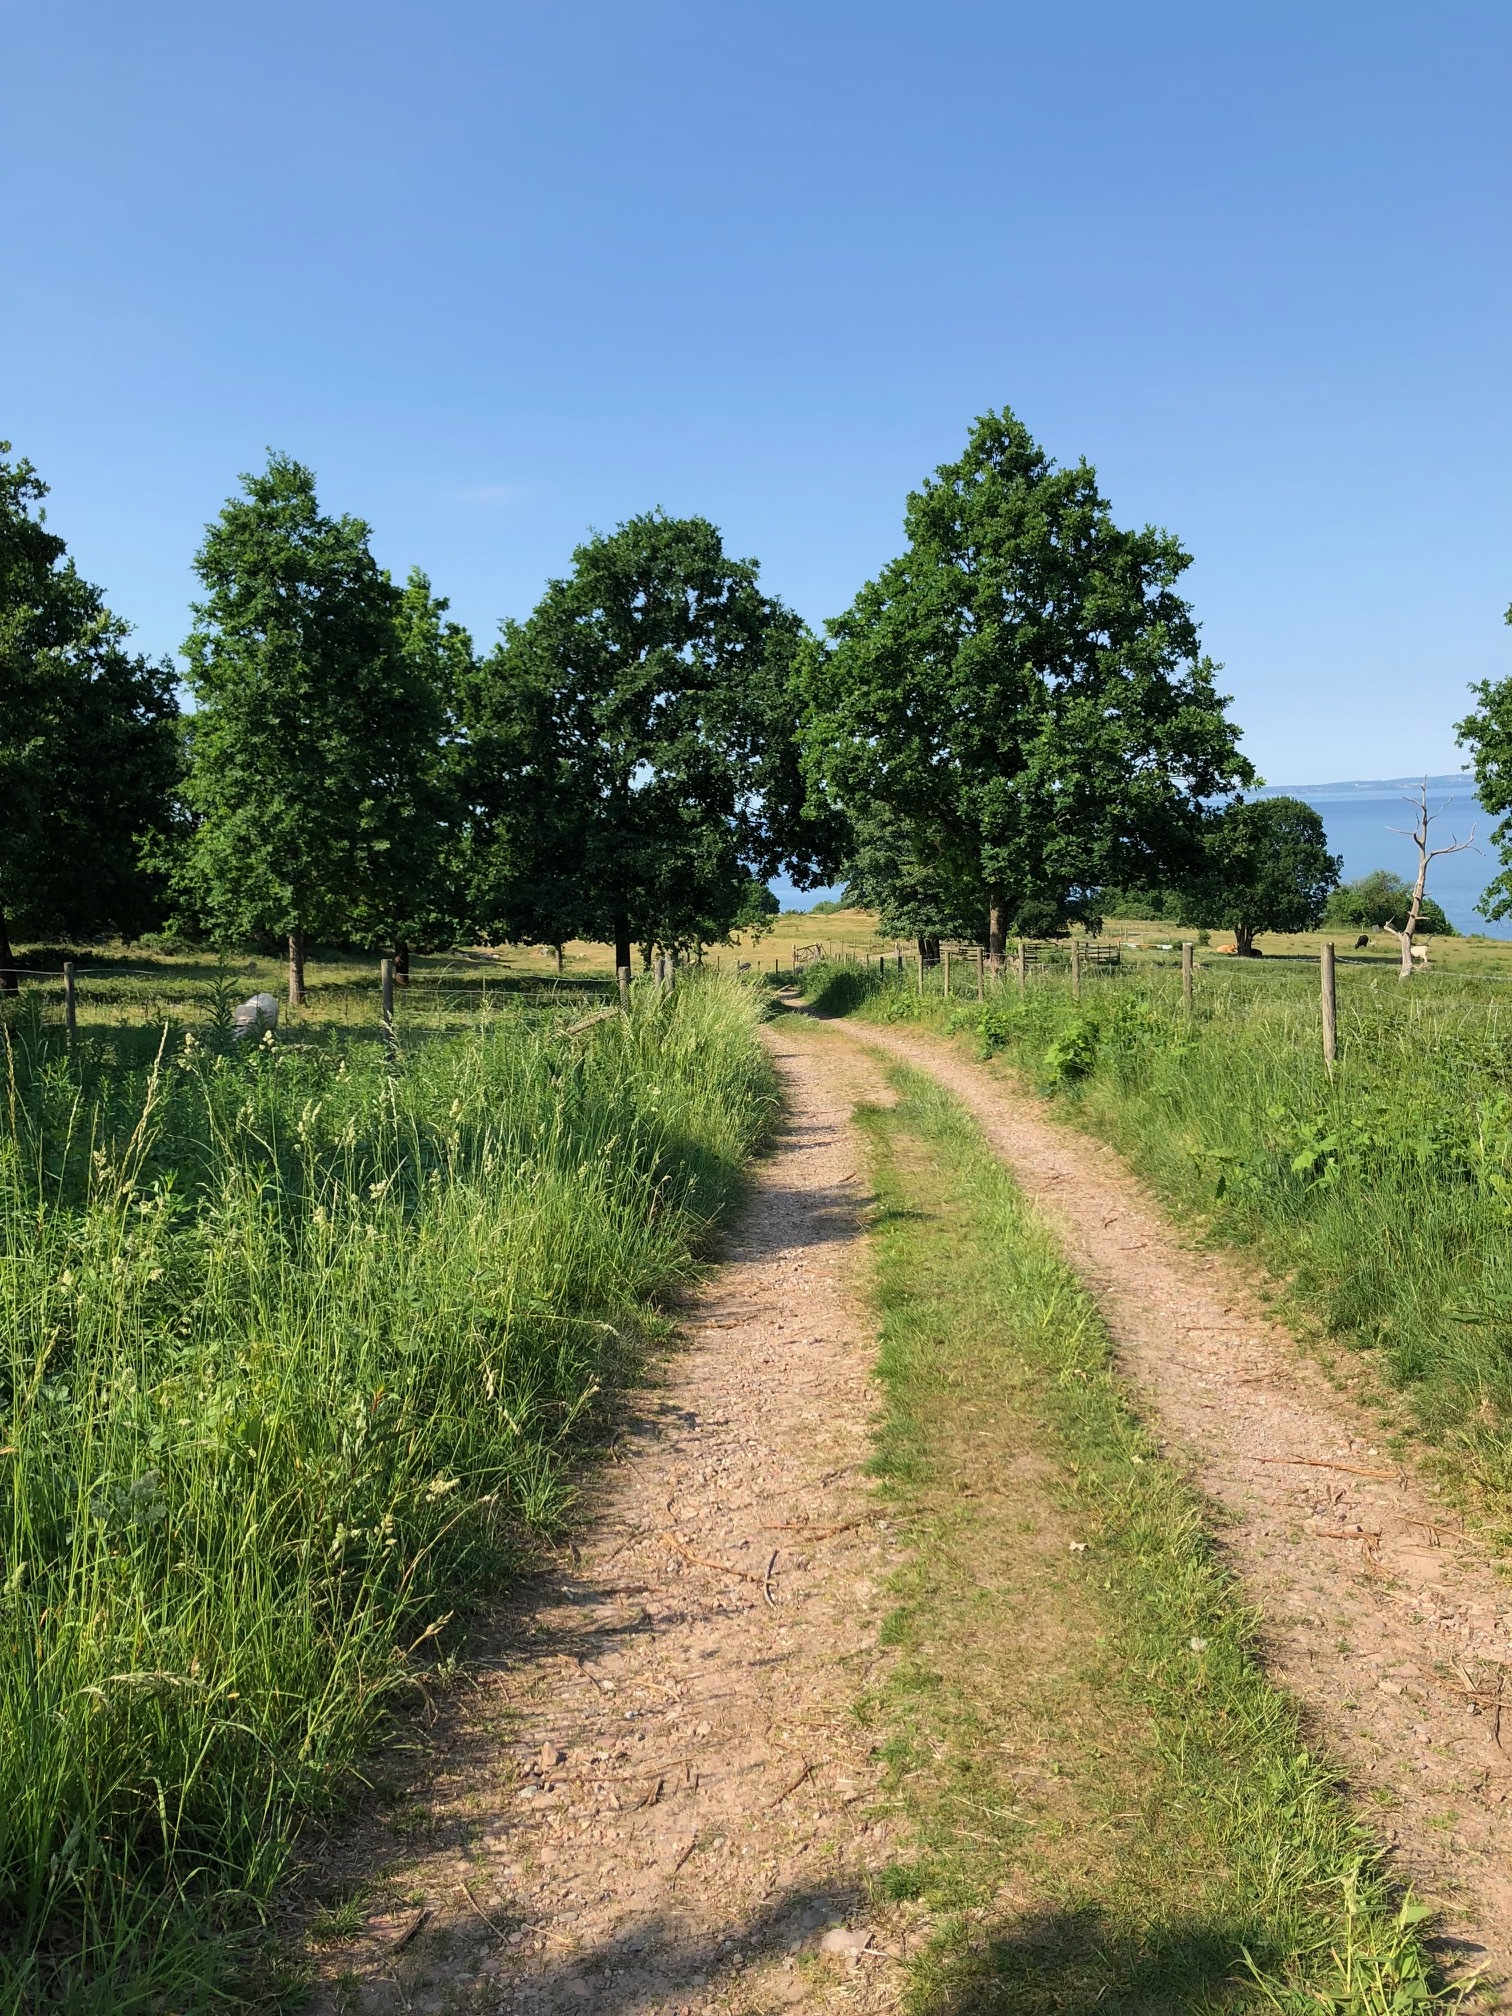 Daily walks down to the sea. Arild, Sweden.